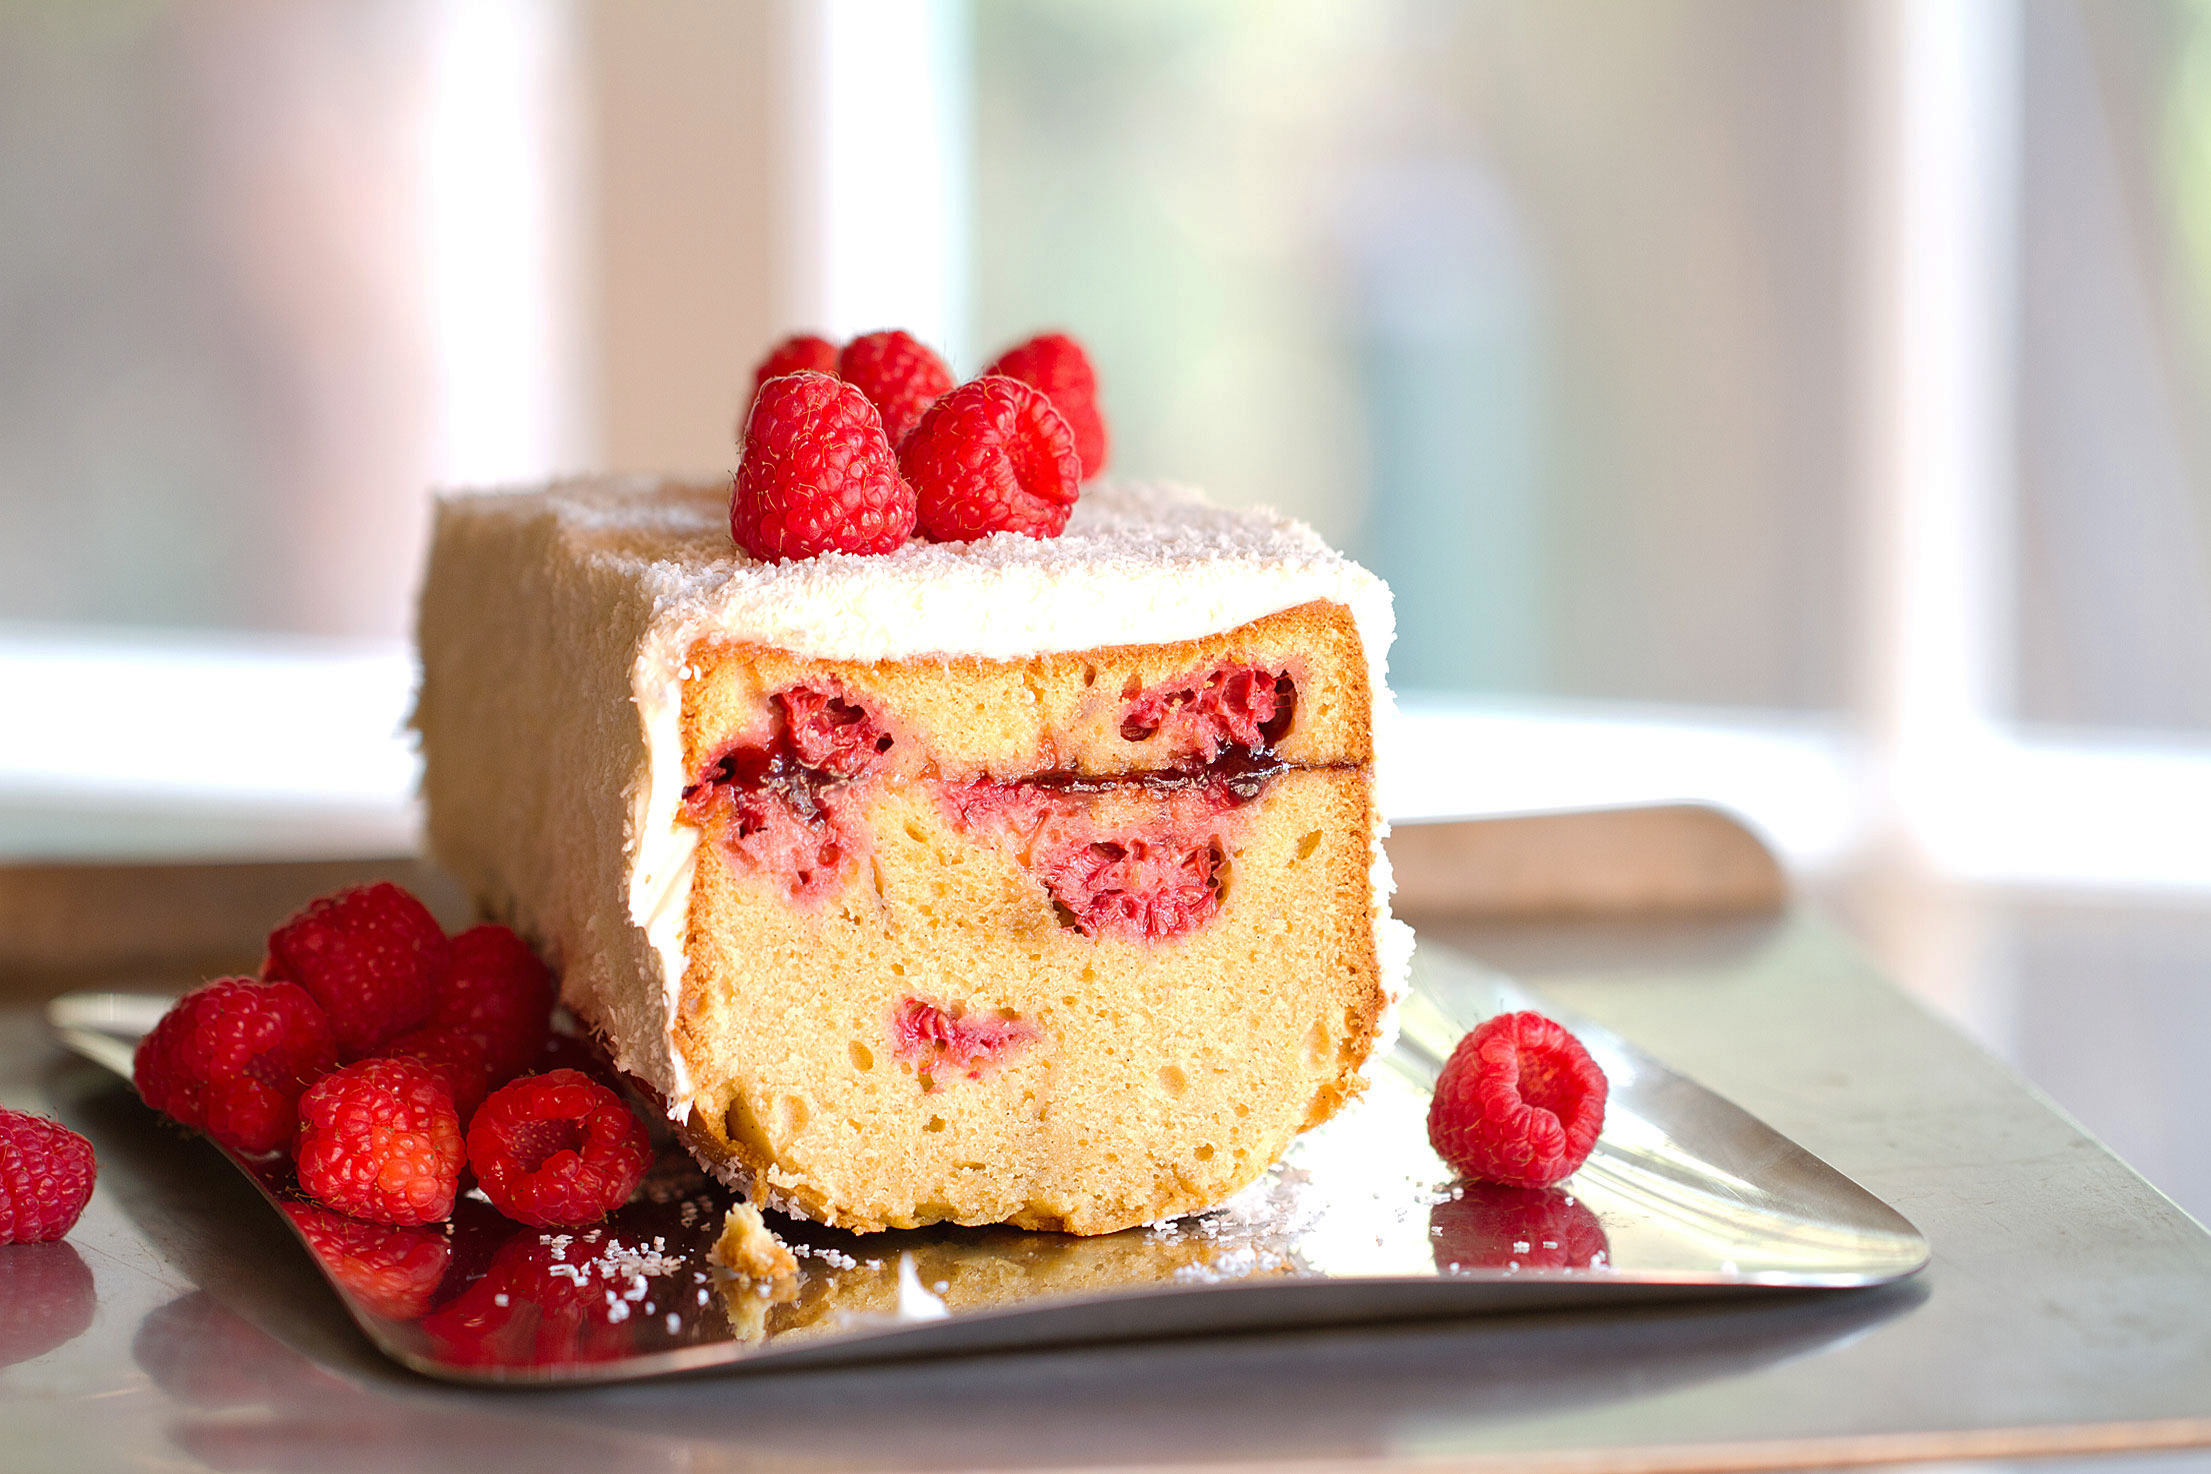 Brown Sugar Pound Cake with Raspberries